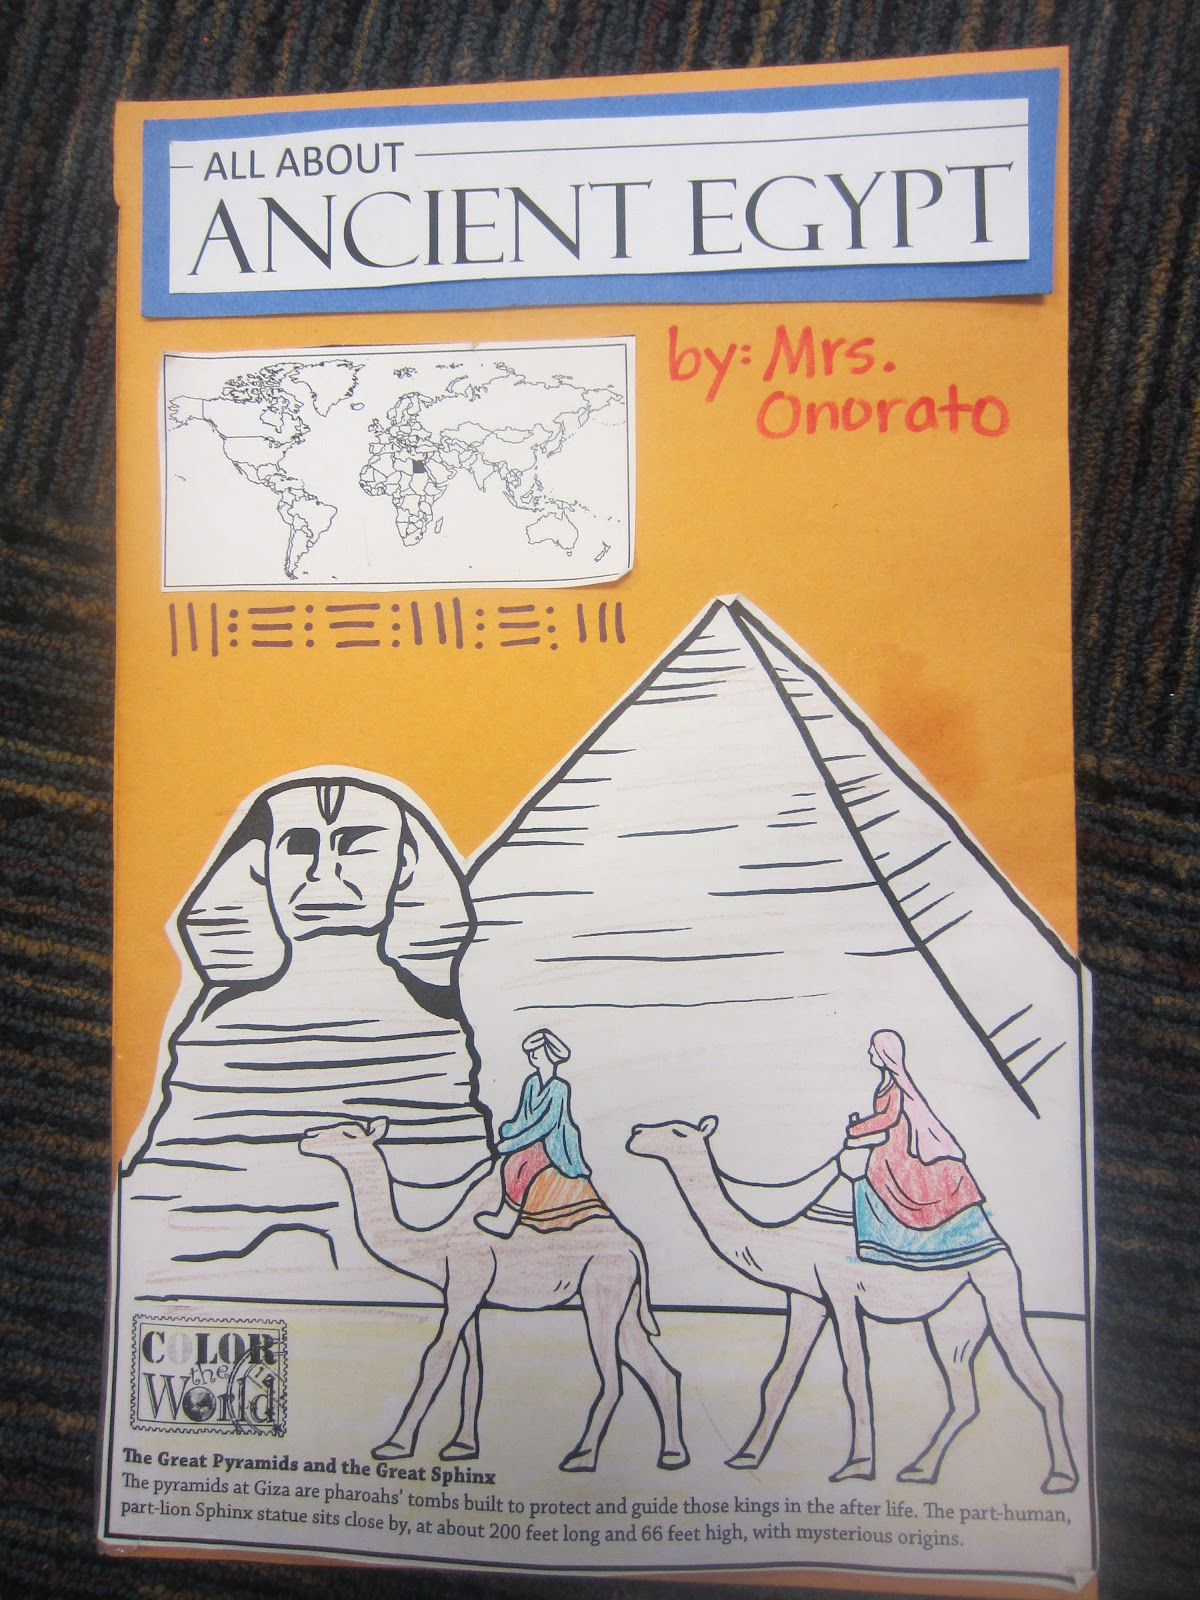 What topic of Ancient Egypt should I write about for my research paper?